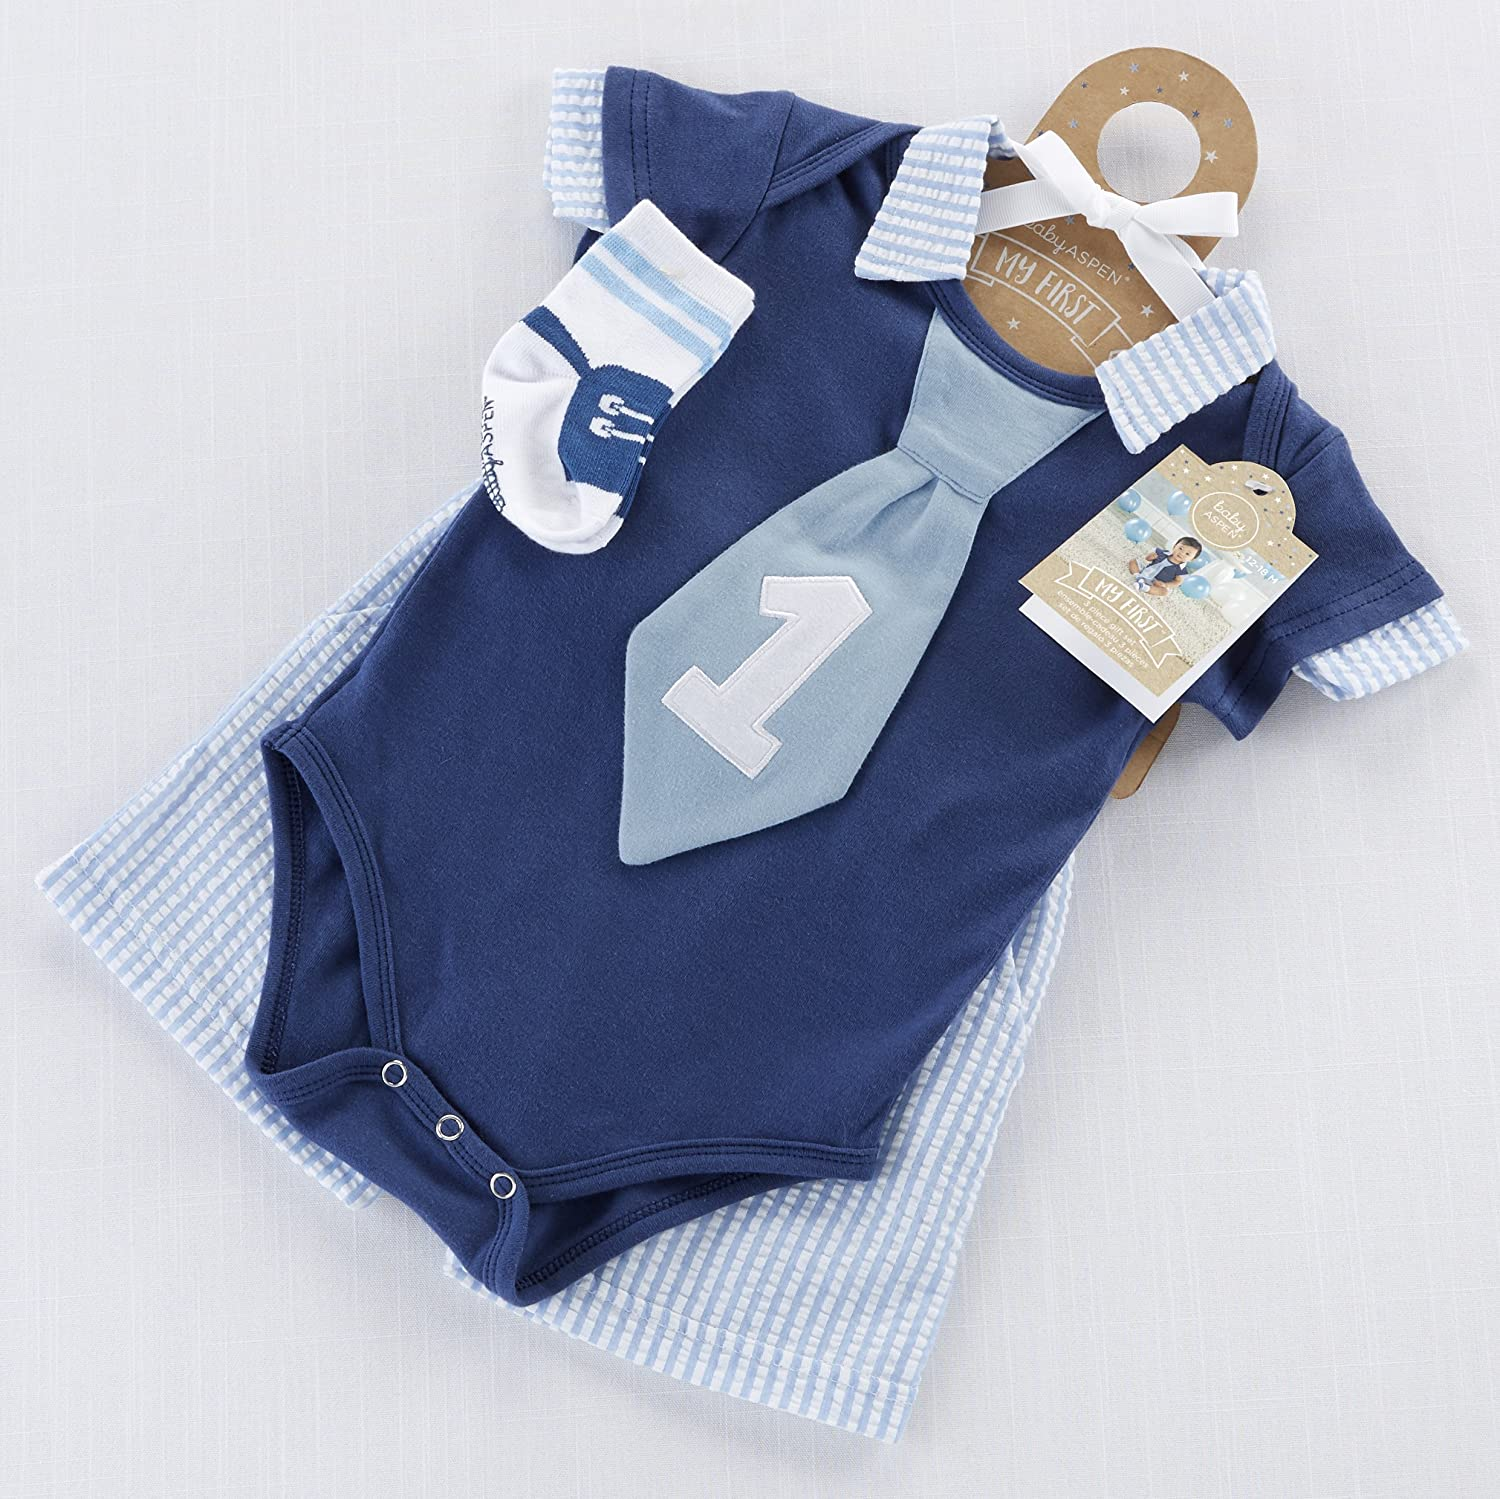 2102ae22d Amazon.com: Baby Aspen My First Birthday Outfit for Boys | Little Fella  Seersucker Outfit: Baby